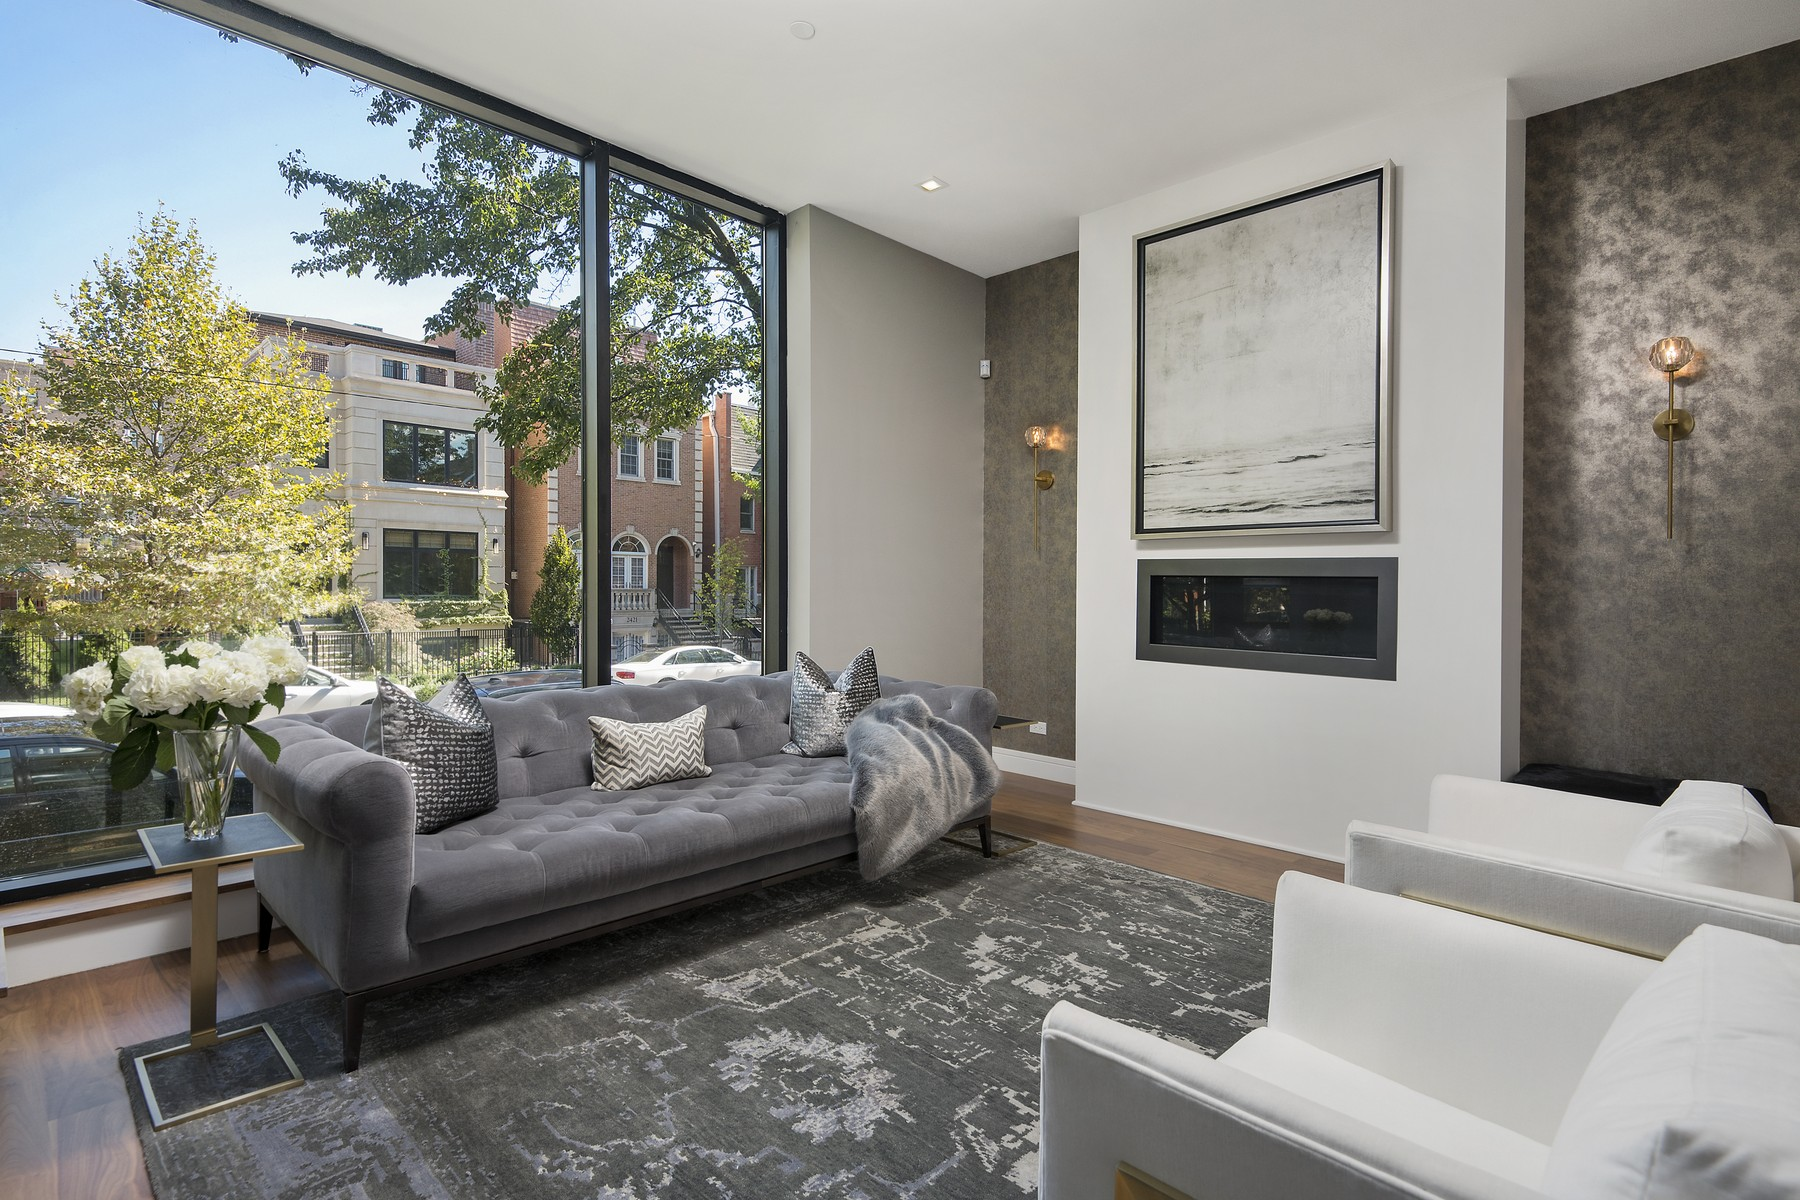 独户住宅 为 销售 在 Contemporary Masterpiece on Quiet Tree-Lined Lincoln Park Street! 2424 N Janssen Avenue, Lincoln Park, 芝加哥, 伊利诺斯州, 60614 美国